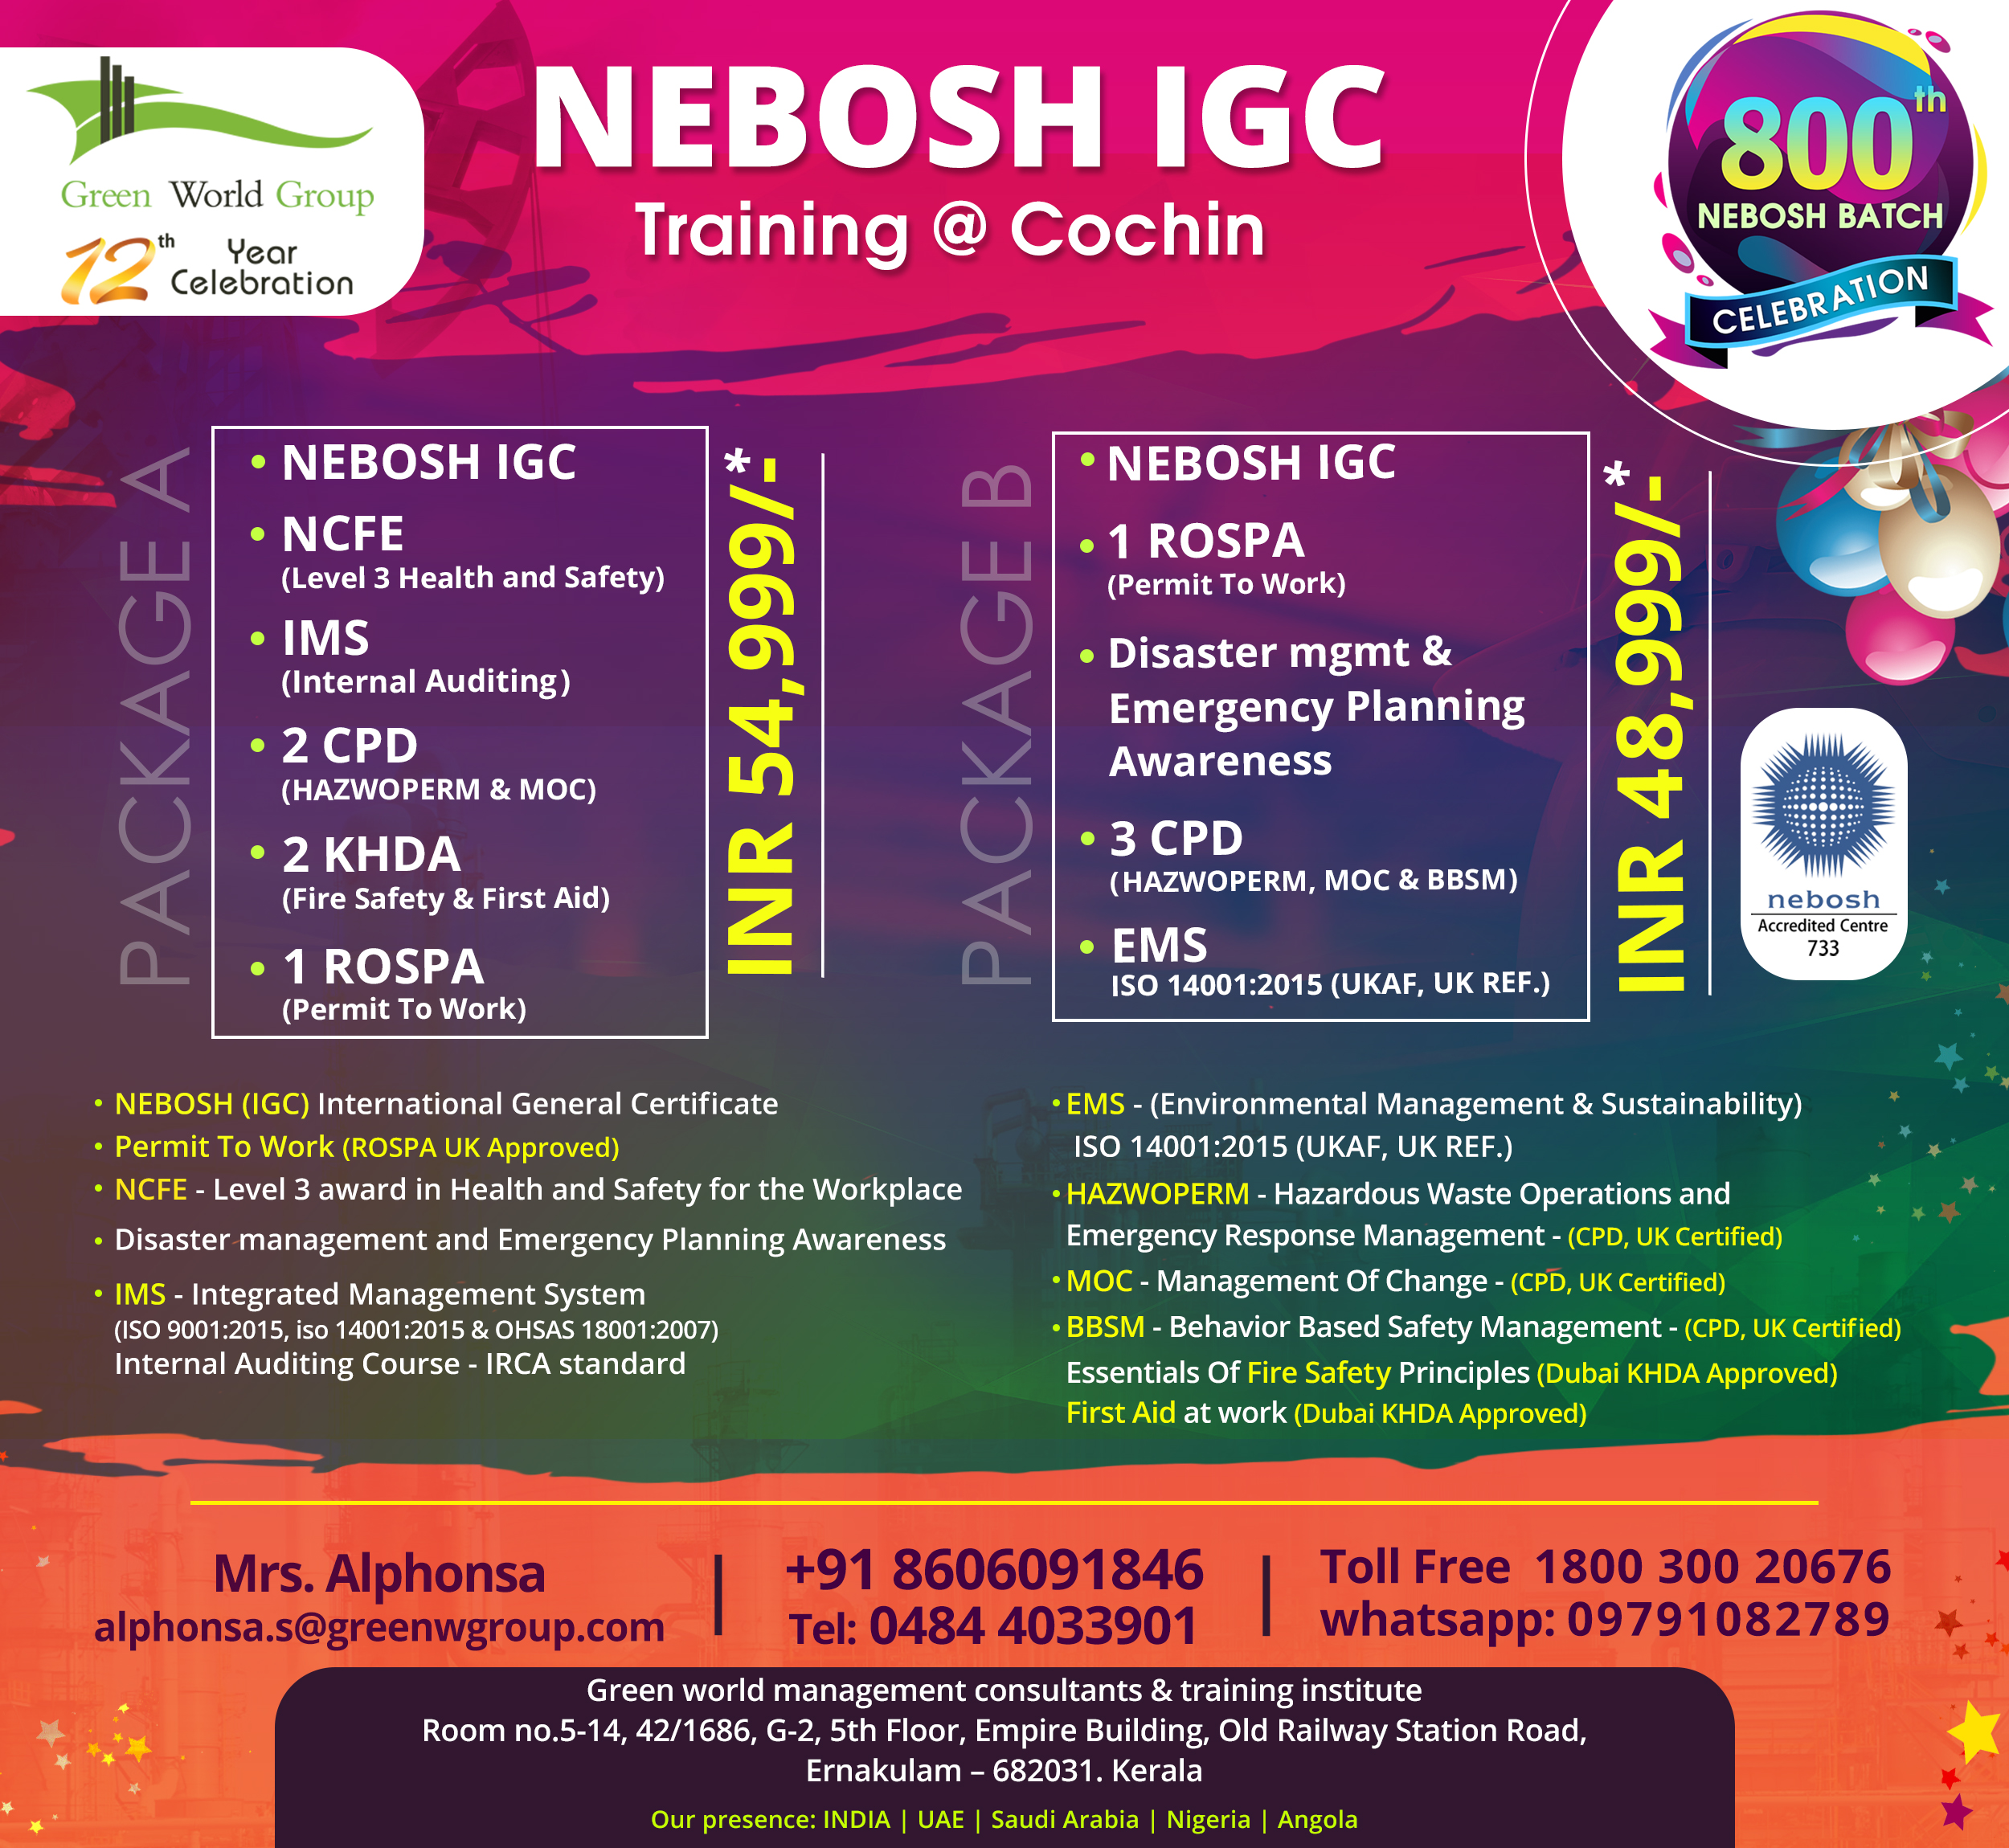 NEBOSH-IGC_800th_Batch_Cochin